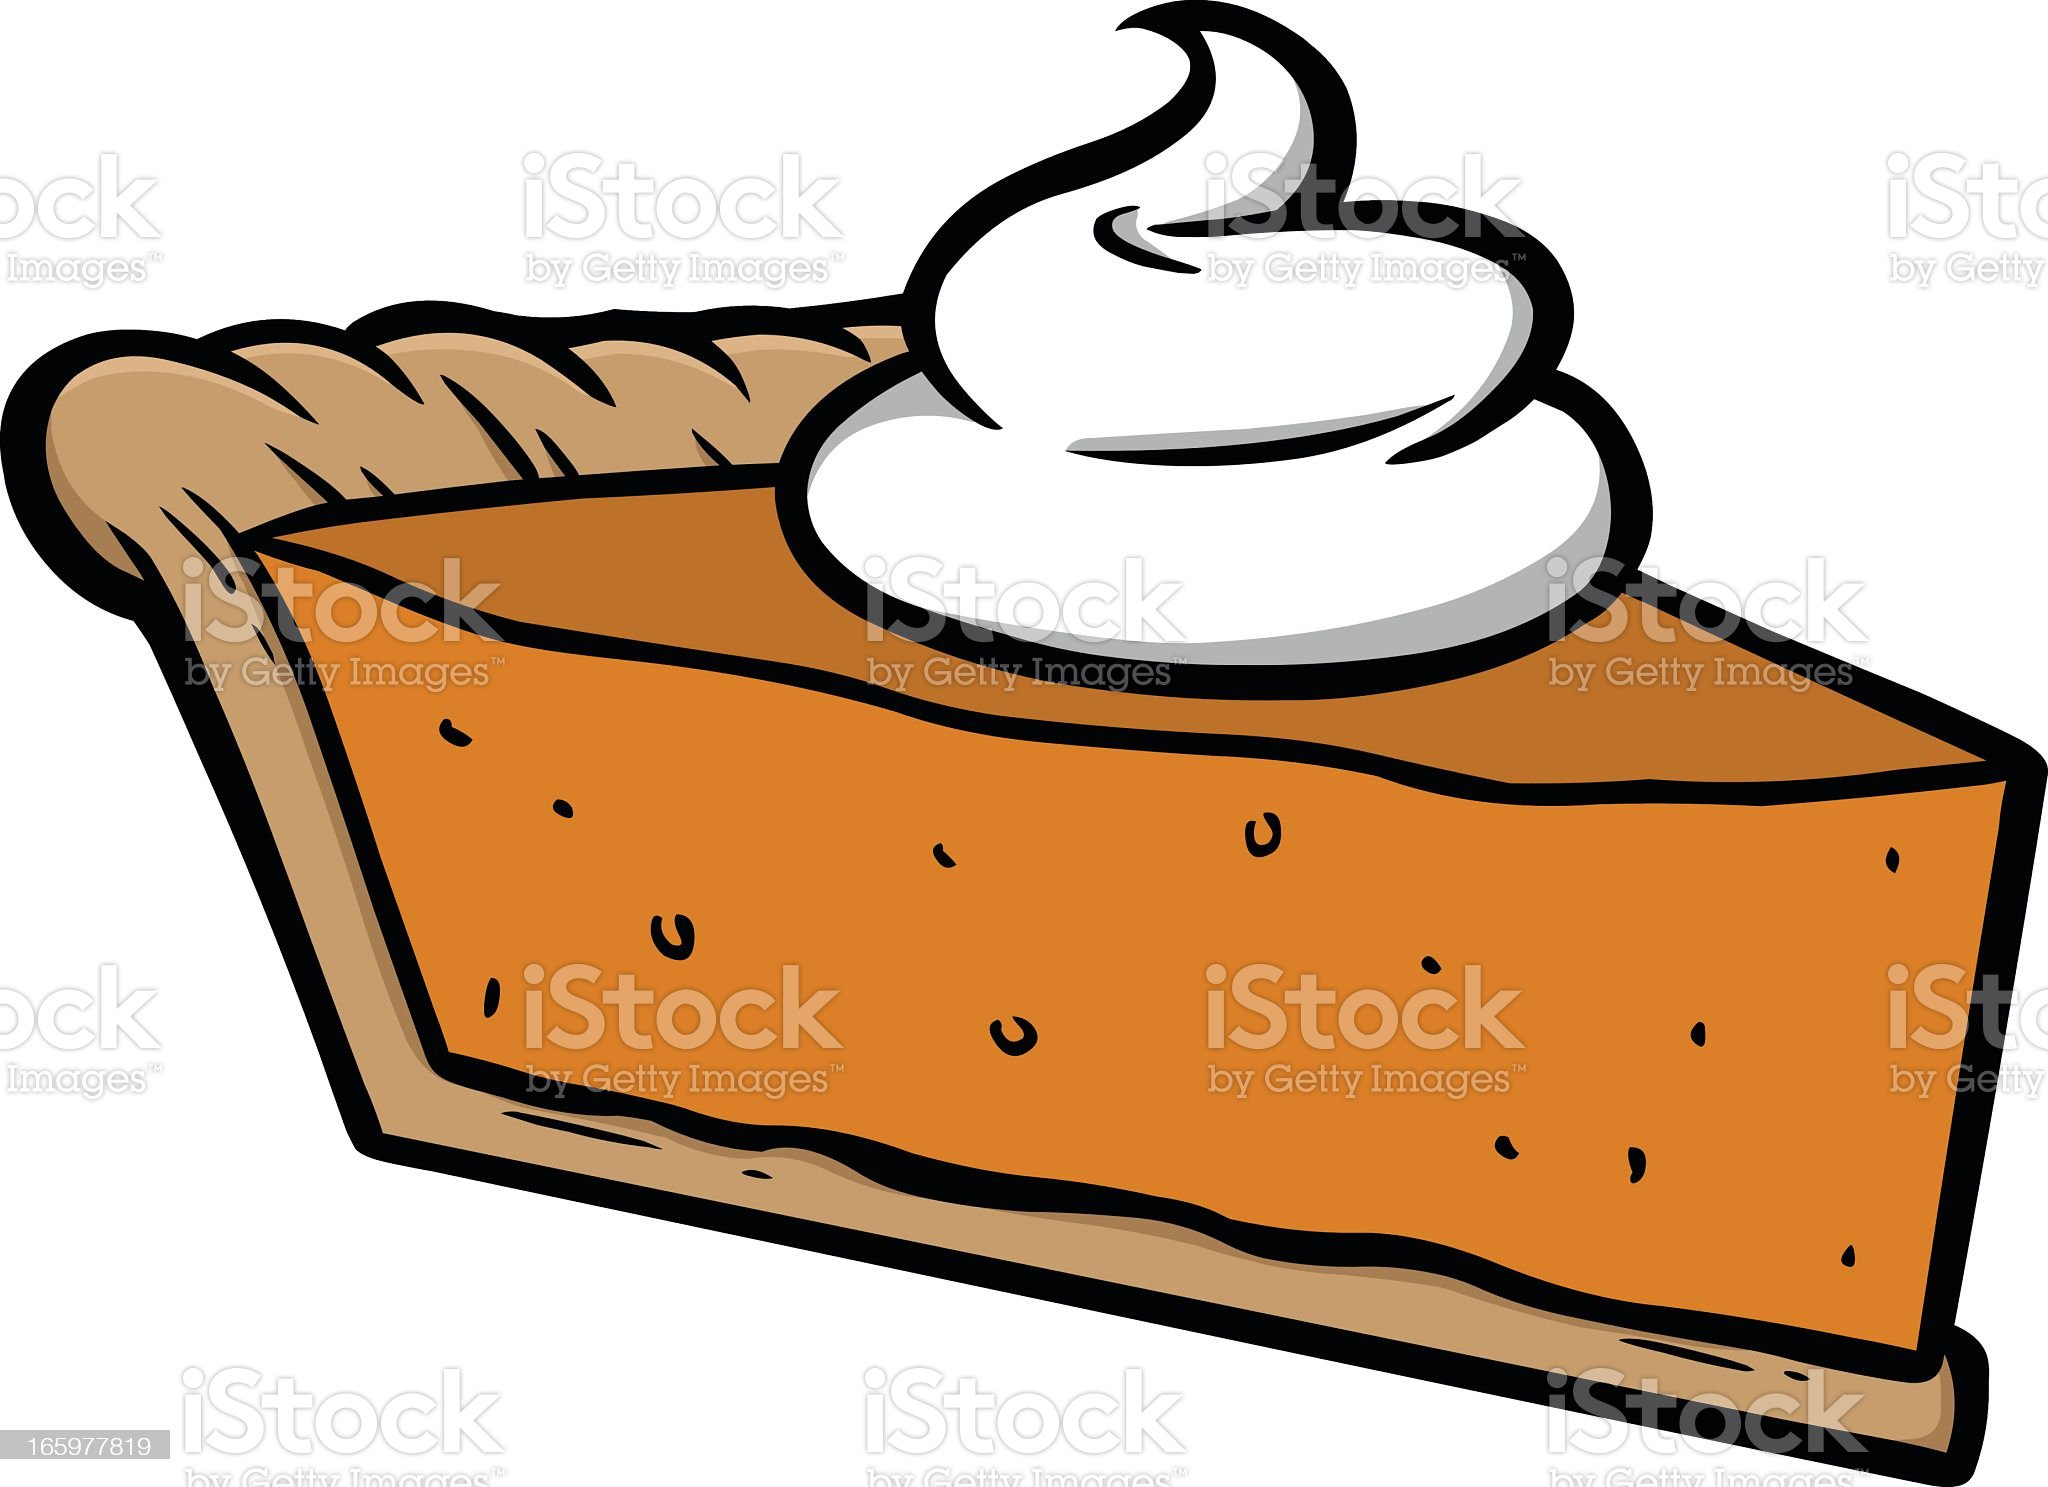 Computer image of pumpkin pie with whipped cream on top royalty-free stock vector art